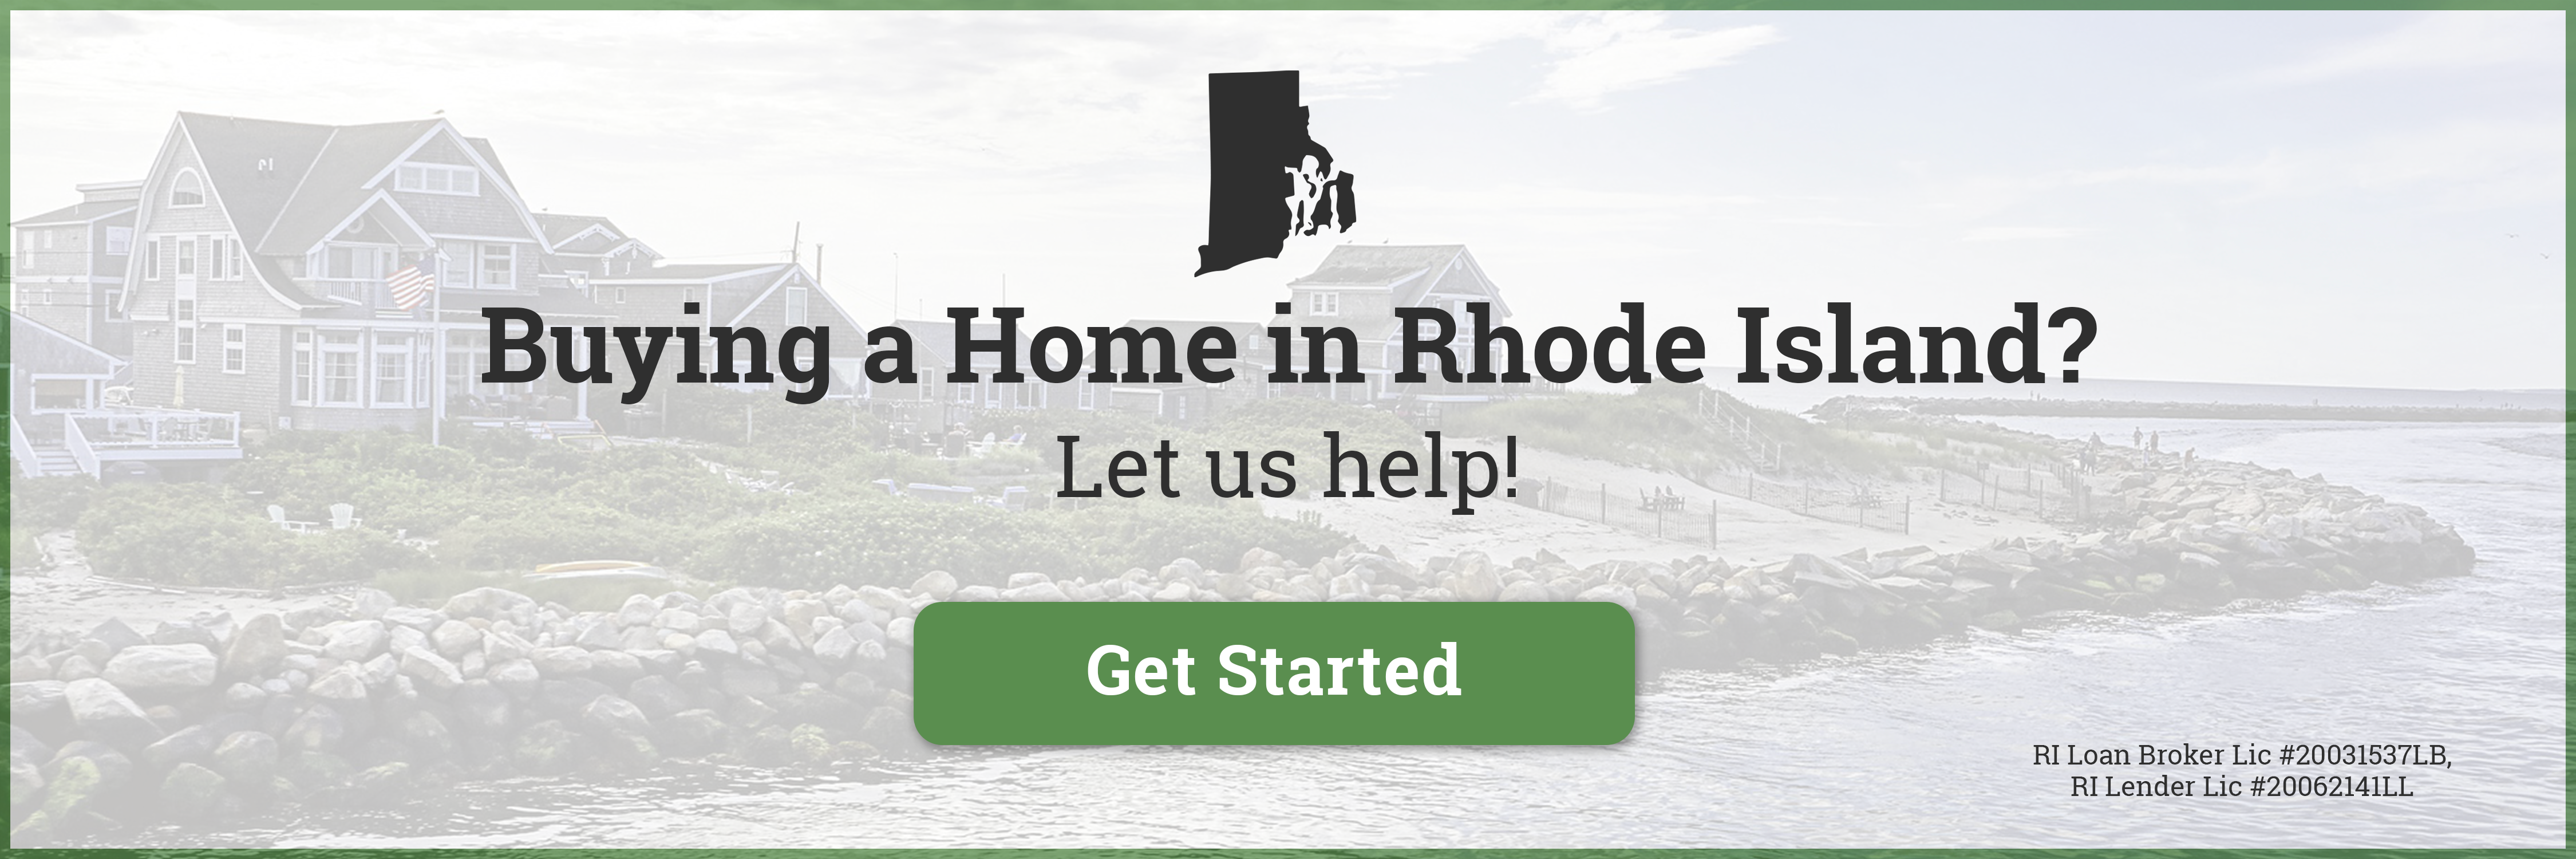 Buying a Home in Rhode Island?